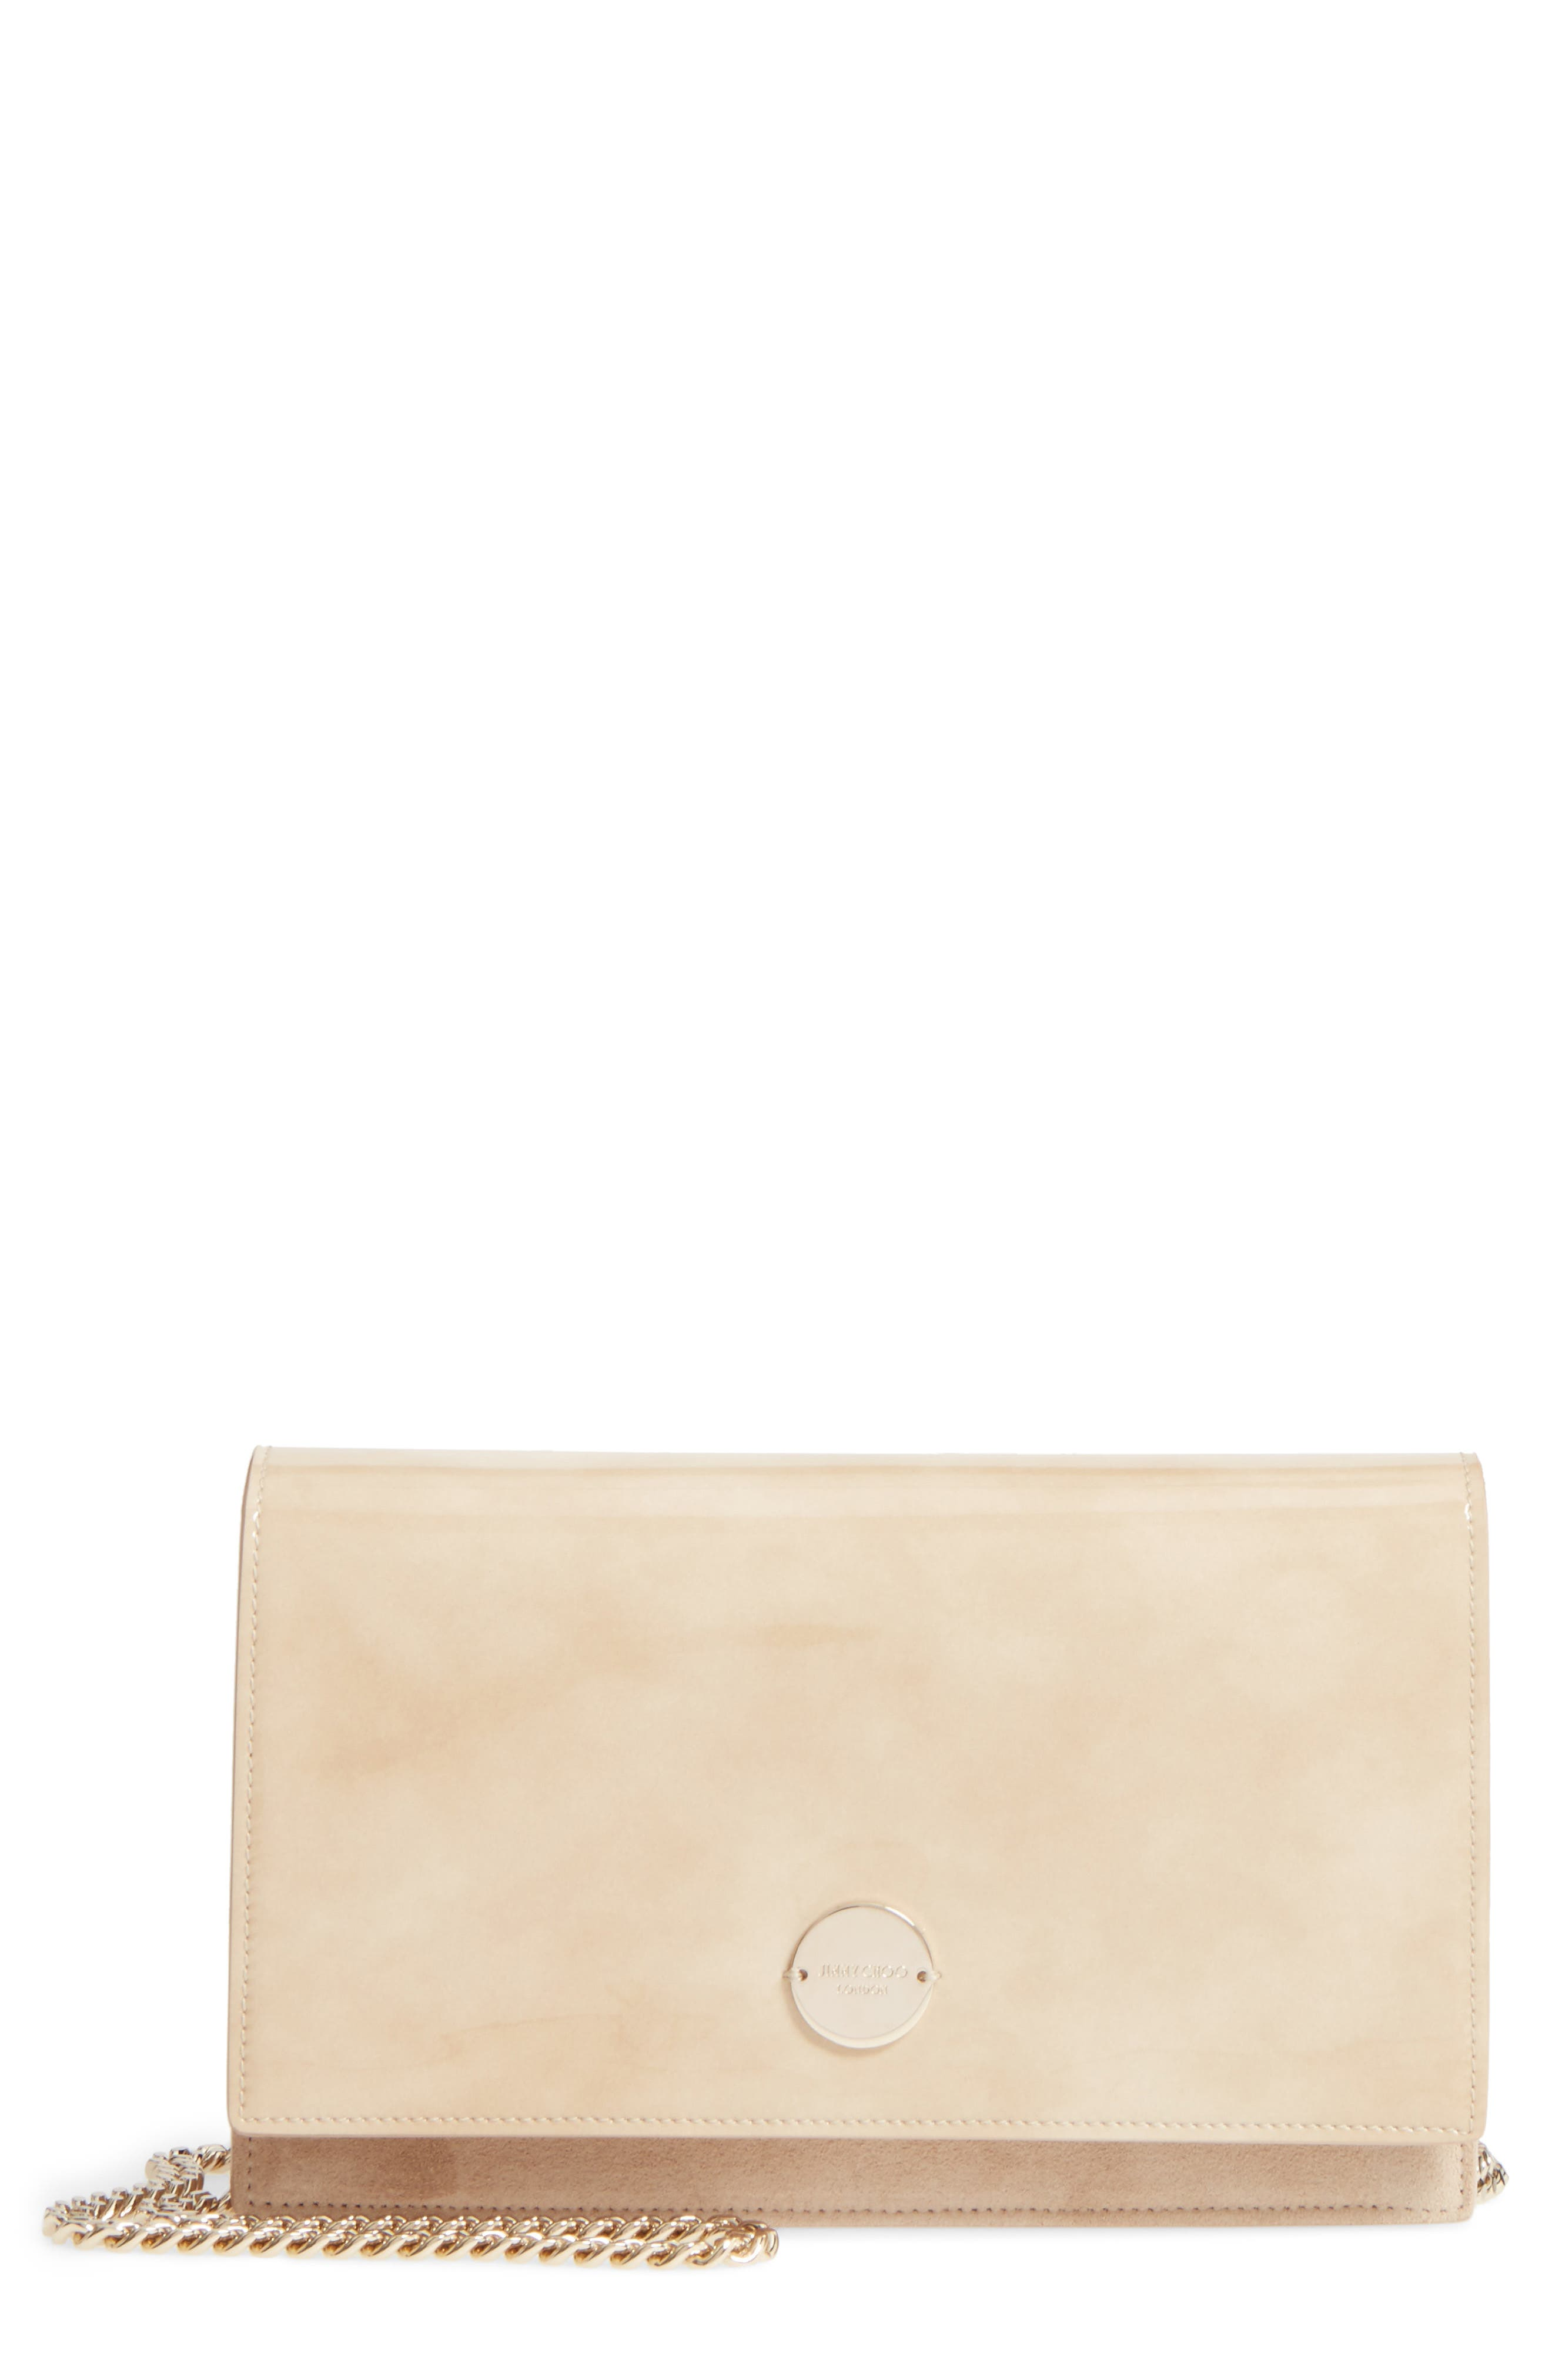 Florence Patent Leather & Suede Clutch,                         Main,                         color, NUDE